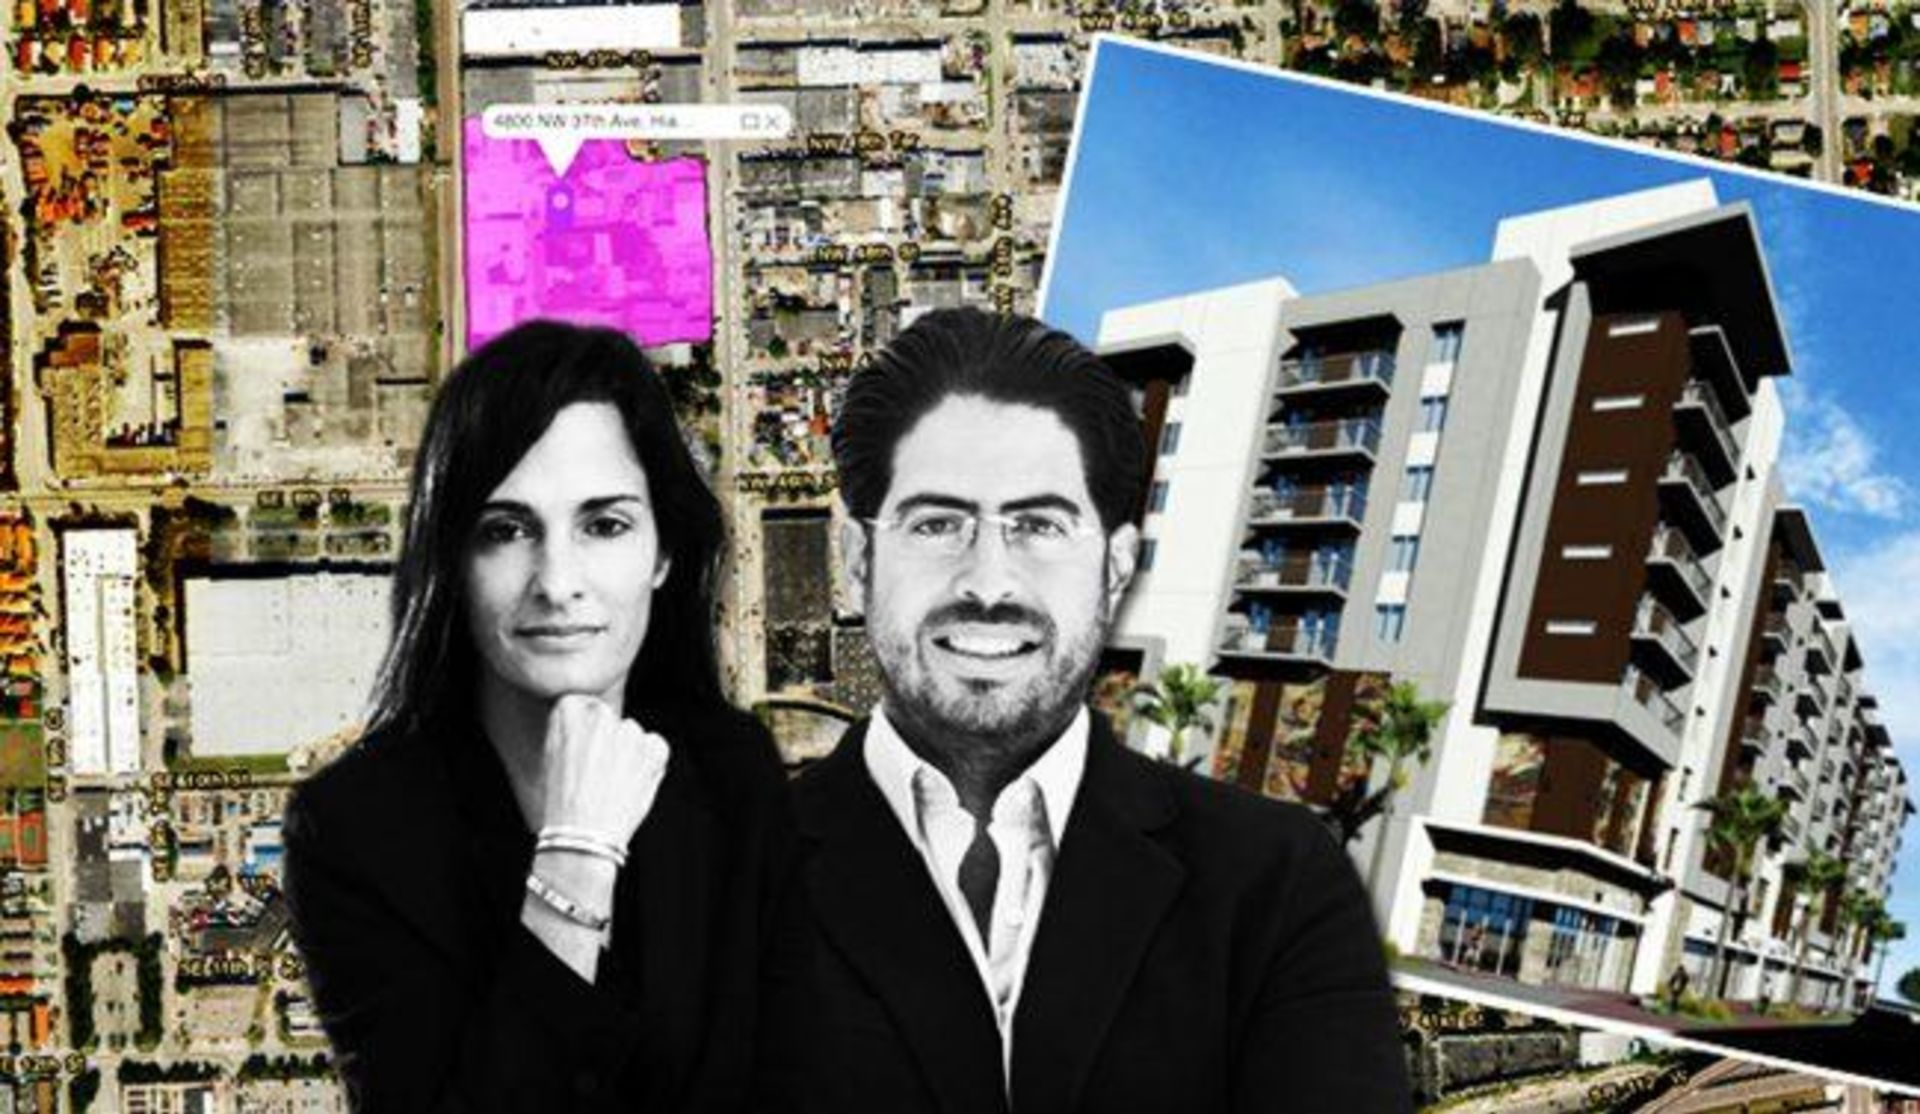 Avra Jain, Terra among developers planning new projects in Hialeah